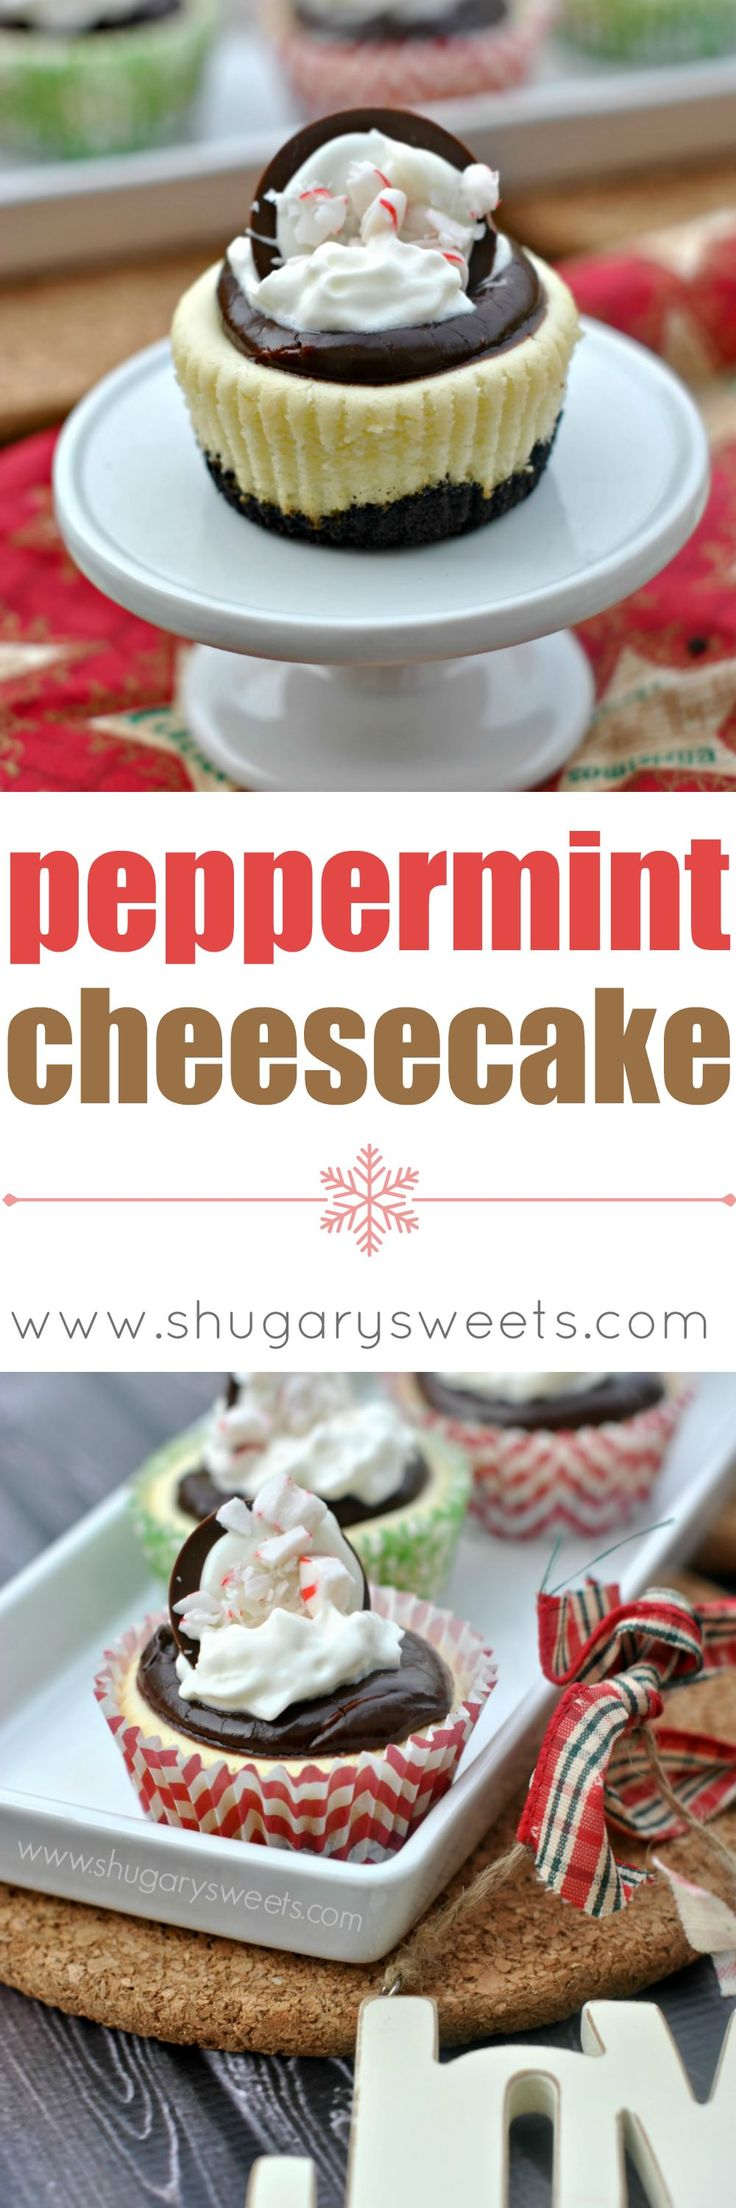 Individual Peppermint Cheesecakes brought to you by PHILADELPHIA Cream cheese! I'm not sure how far in advance you plan for the holidays, but in my family we start making our menus early. Then we call each other and tweak them some more. Then again the next week. This continues for about 4 weeks until the …